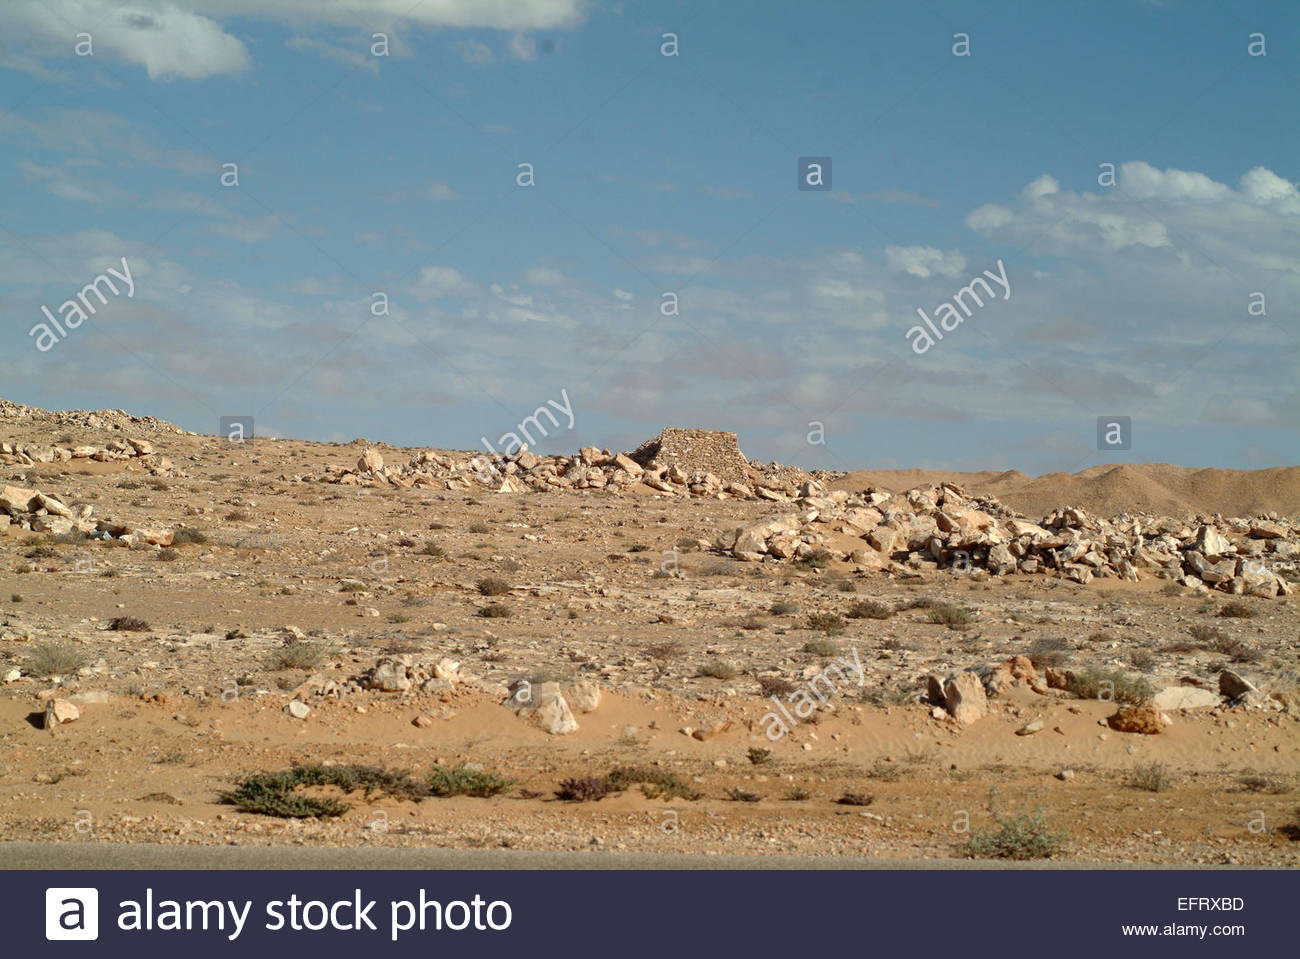 Spanish Western Sahara Occupied By Western Sahara Spanish Sahara Sahara Espanol EH ESH North Africa Currently Occupied - Stock Image